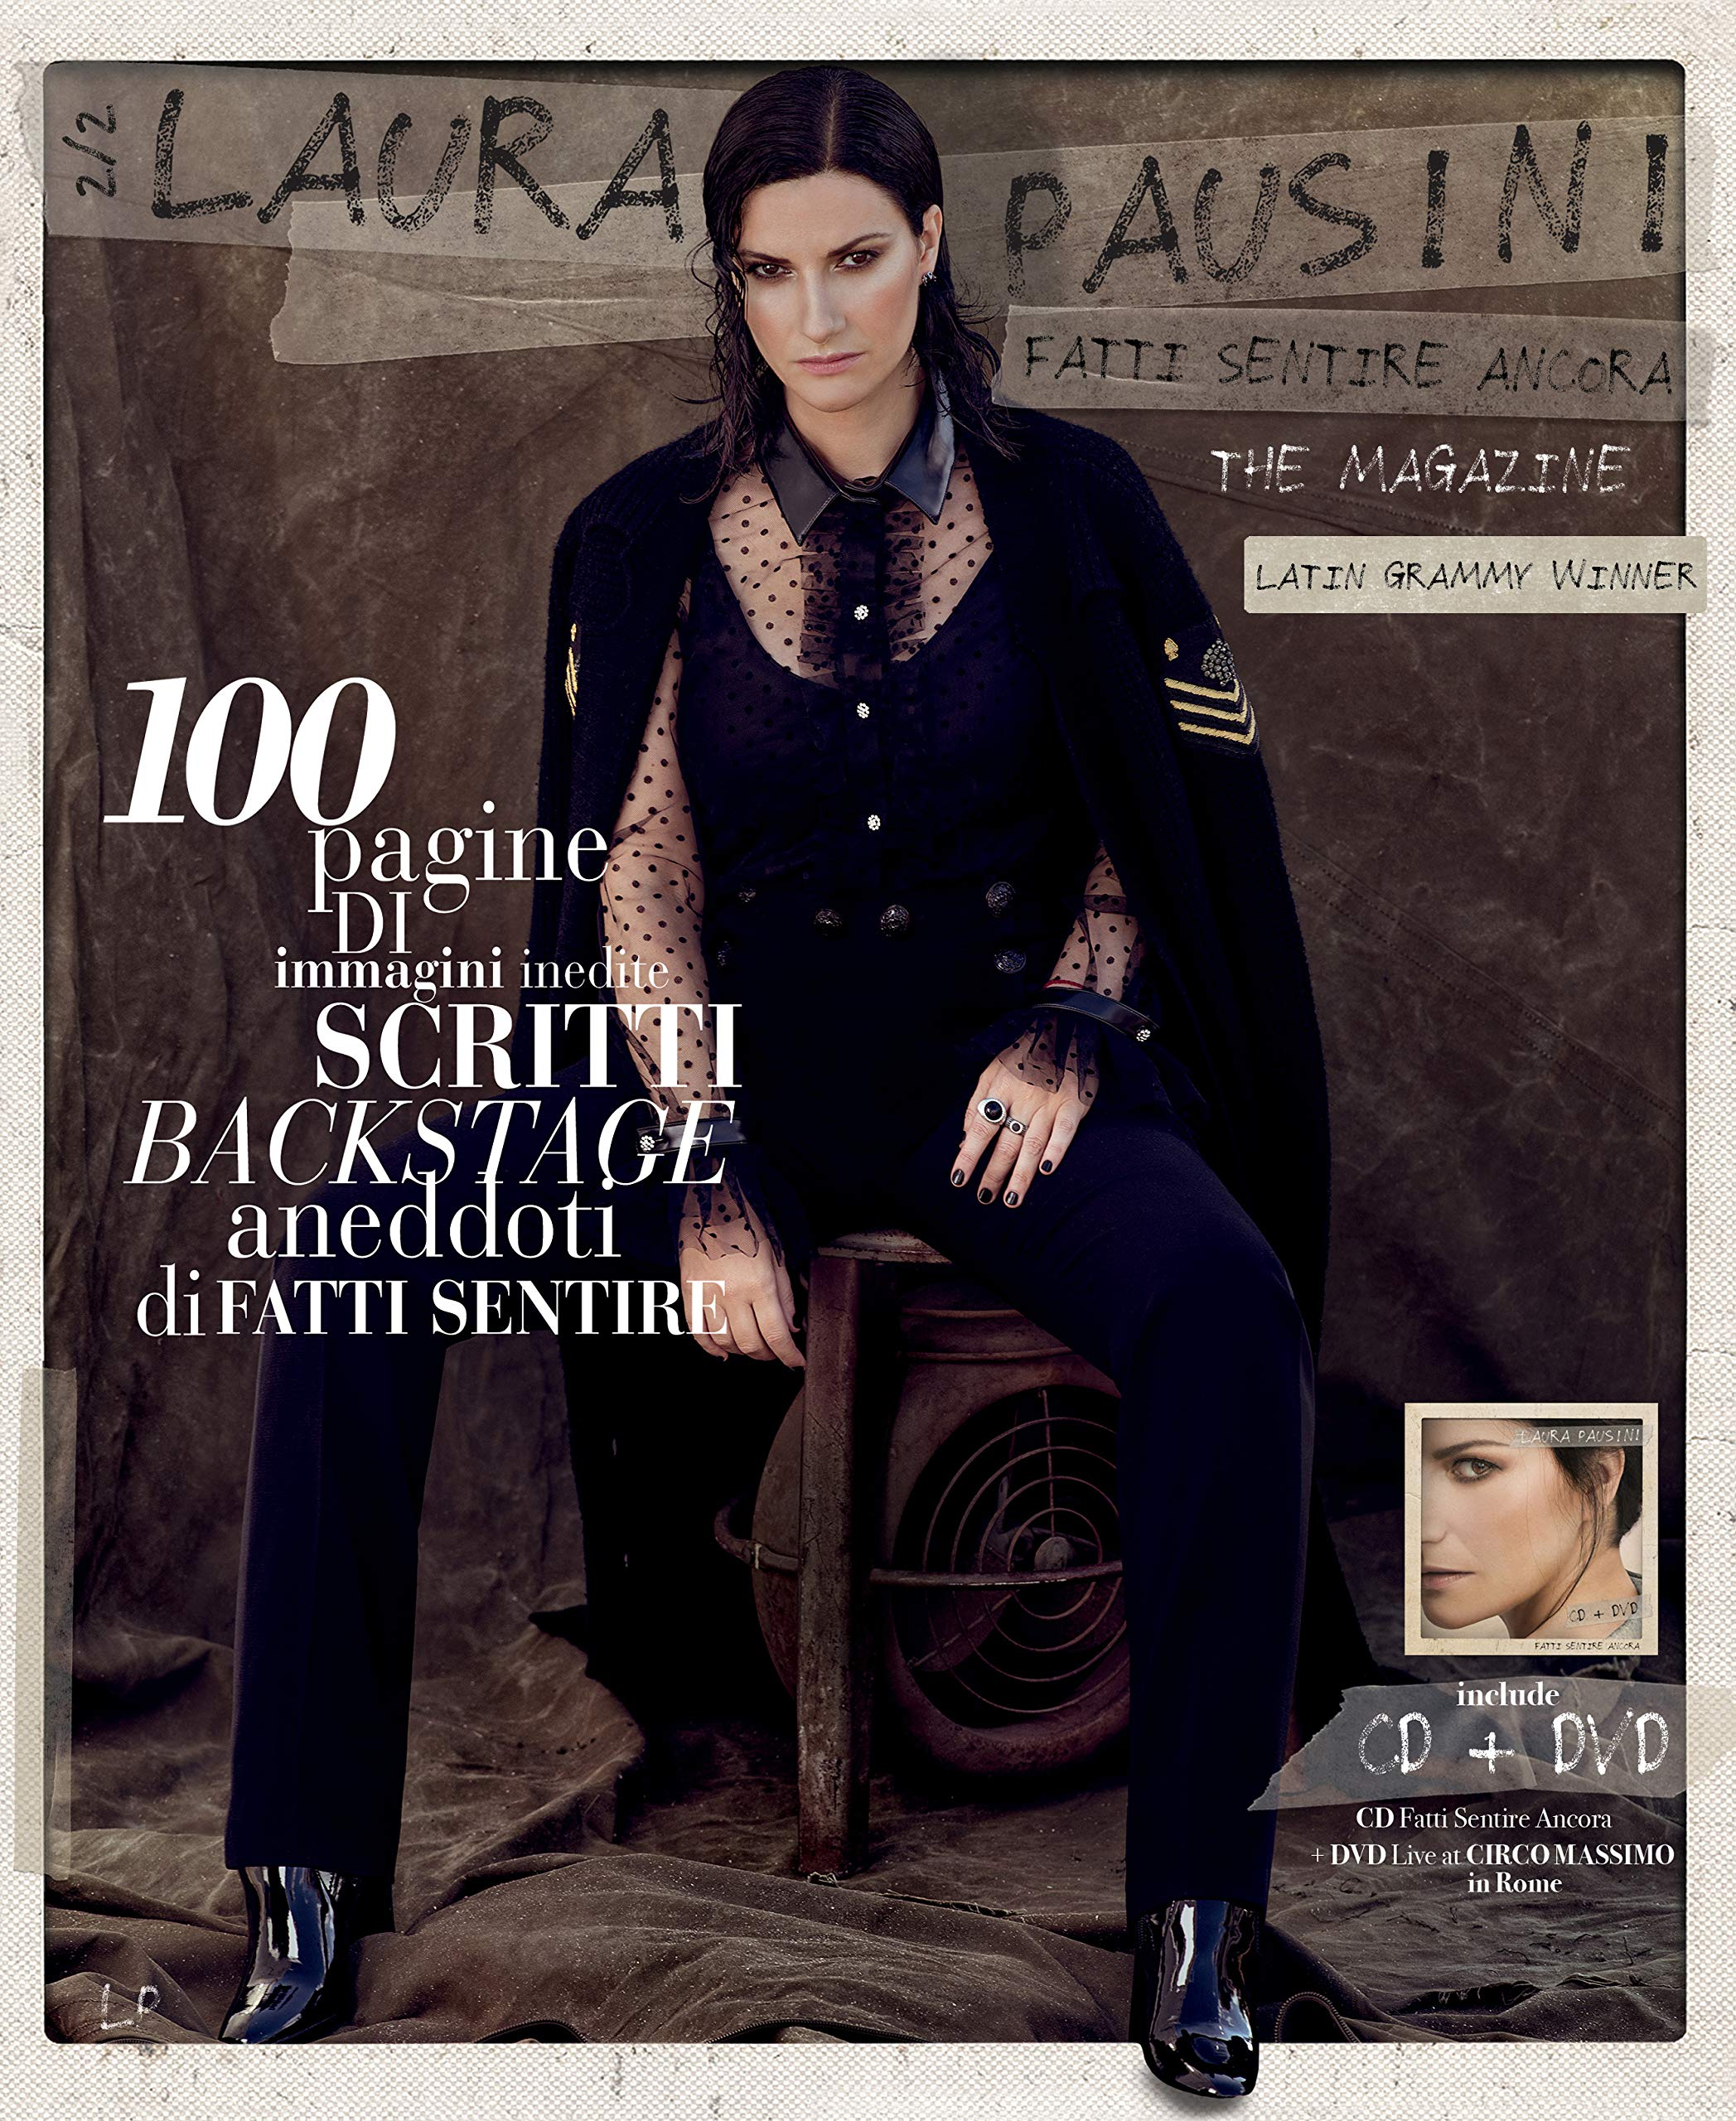 CD : Laura Pausini - Fatti Sentire Ancora: The Magazine (With DVD, With Book, Italy - Import)